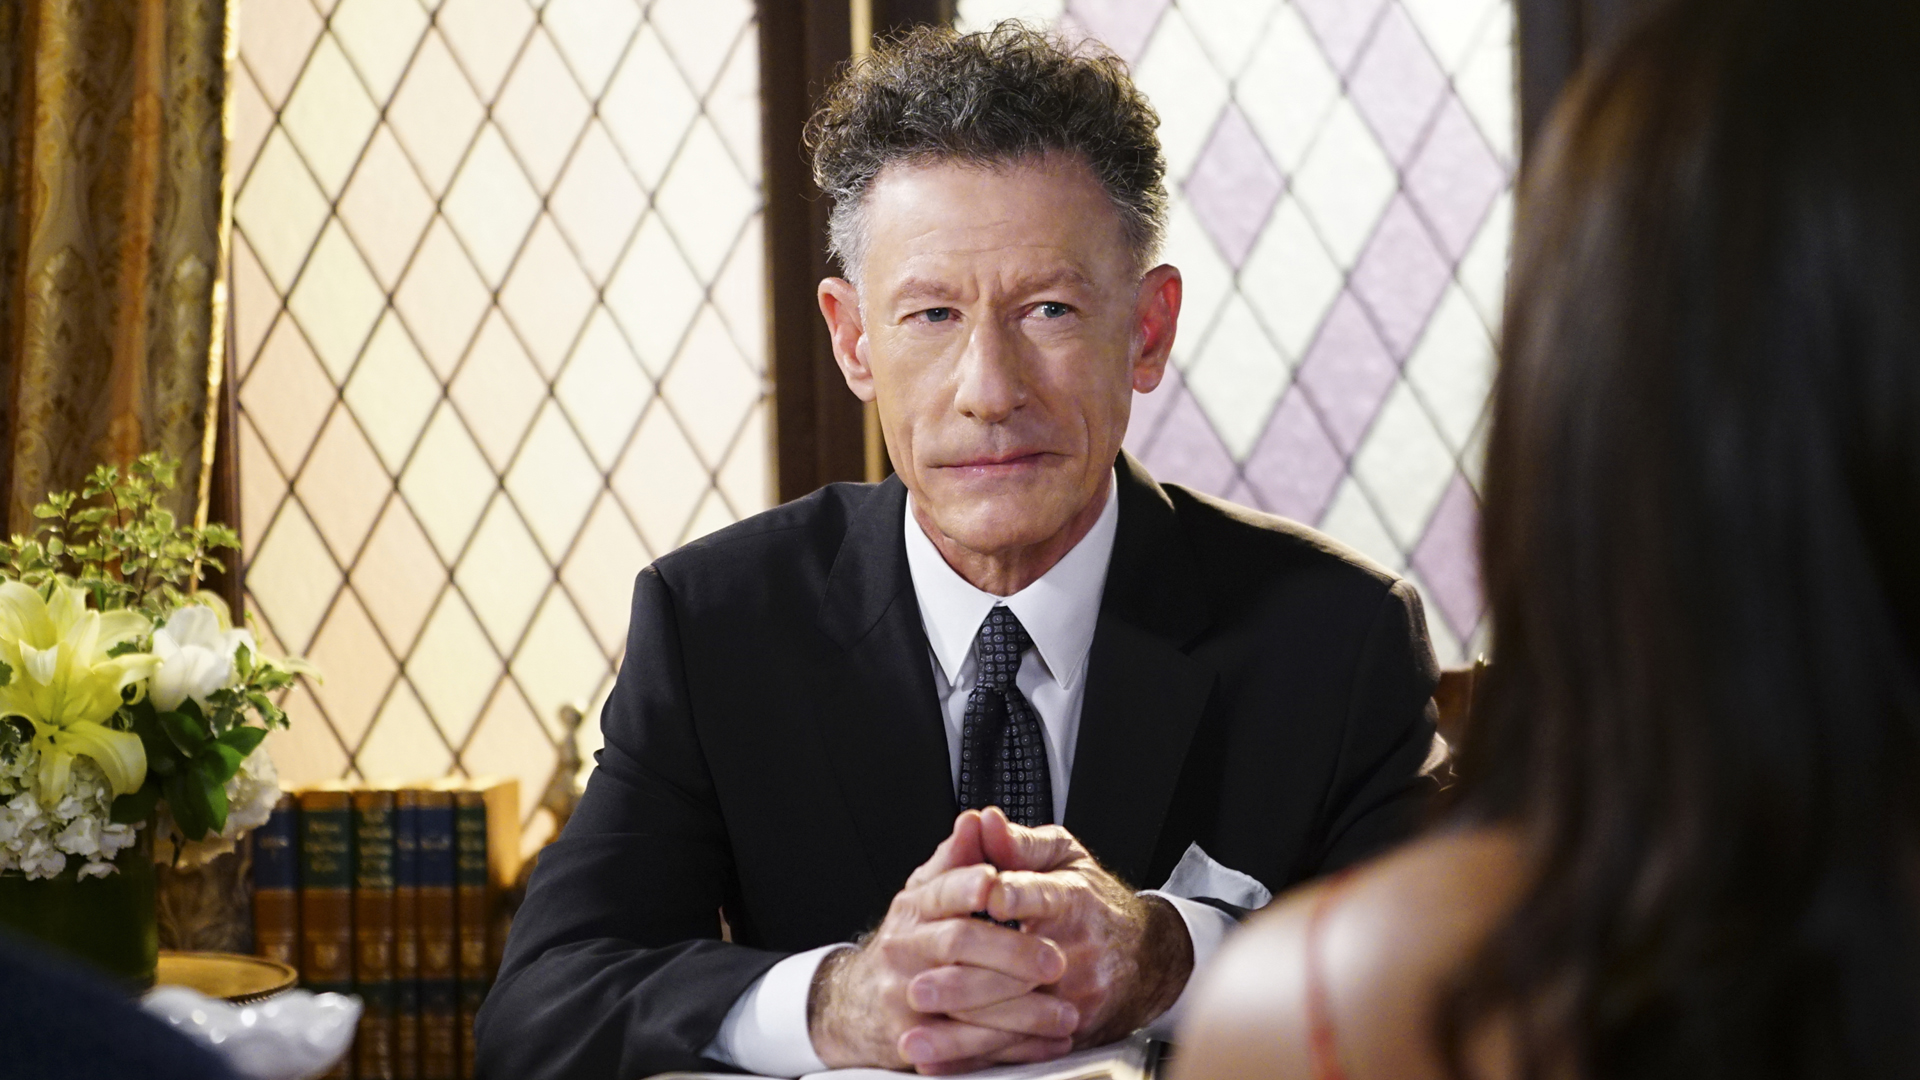 Lyle Lovett in